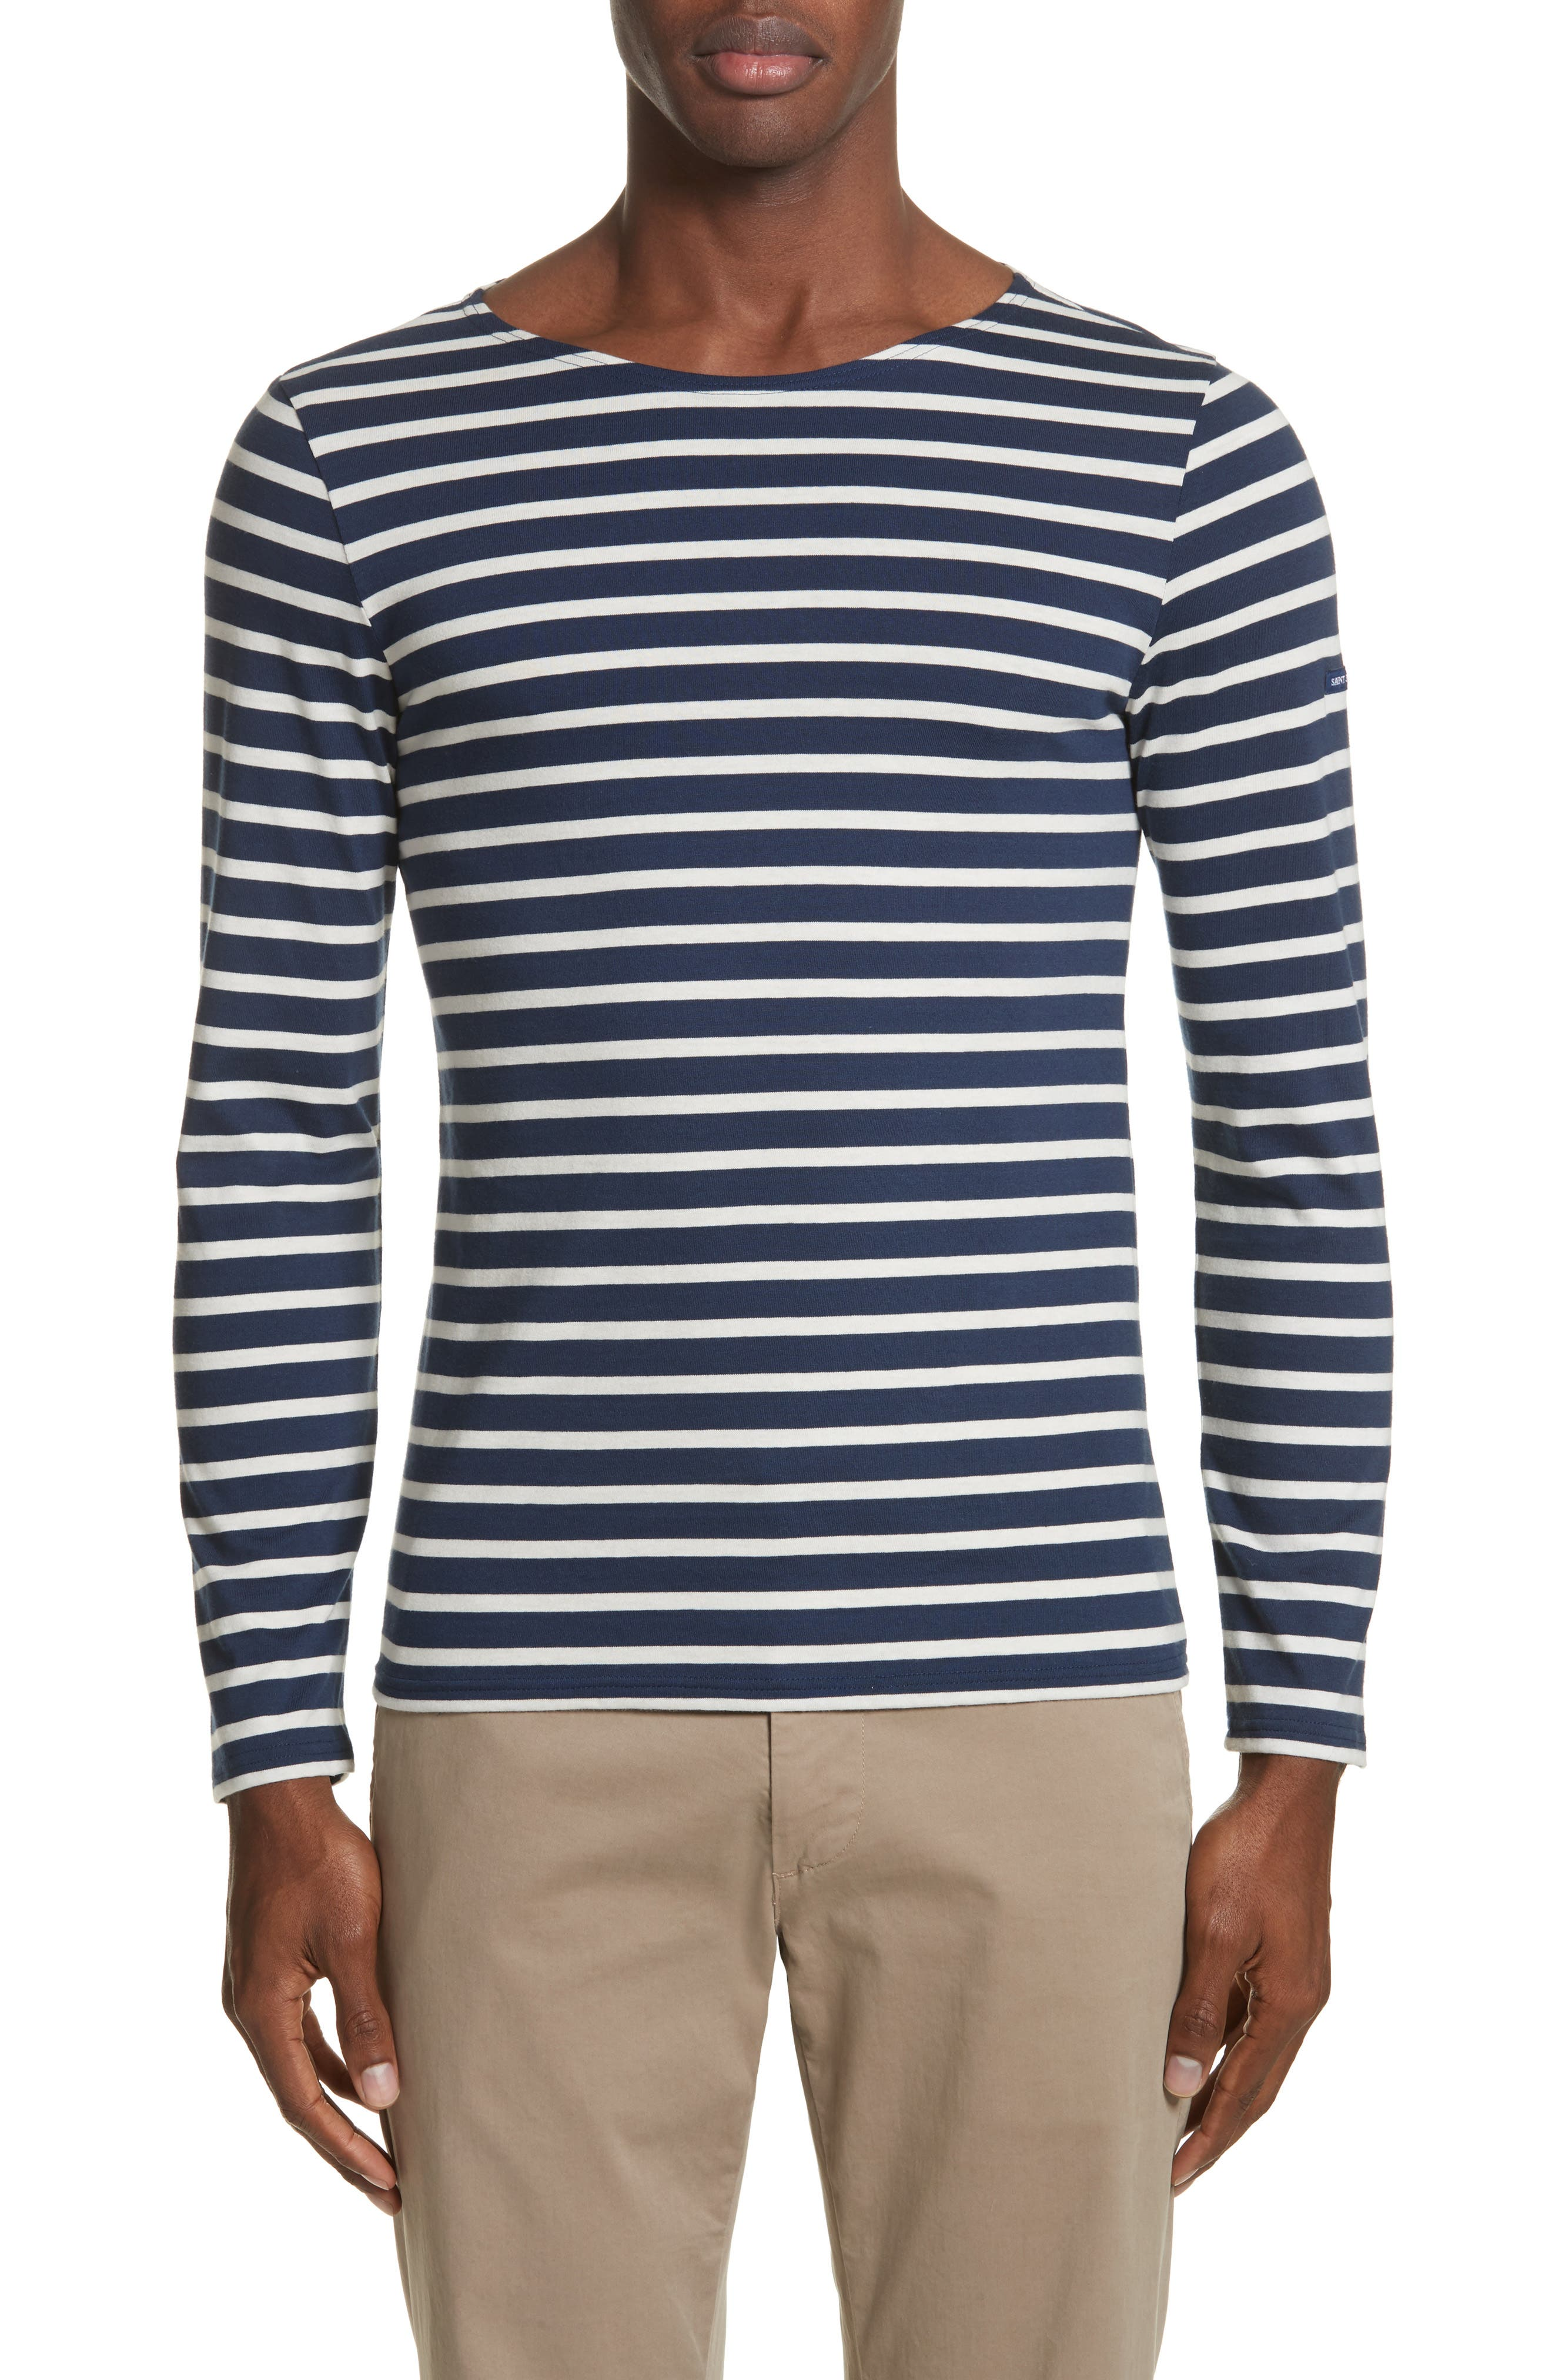 Minquiers Moderne Striped Sailor Shirt,                             Alternate thumbnail 2, color,                             NAVY/ OFF WHITE